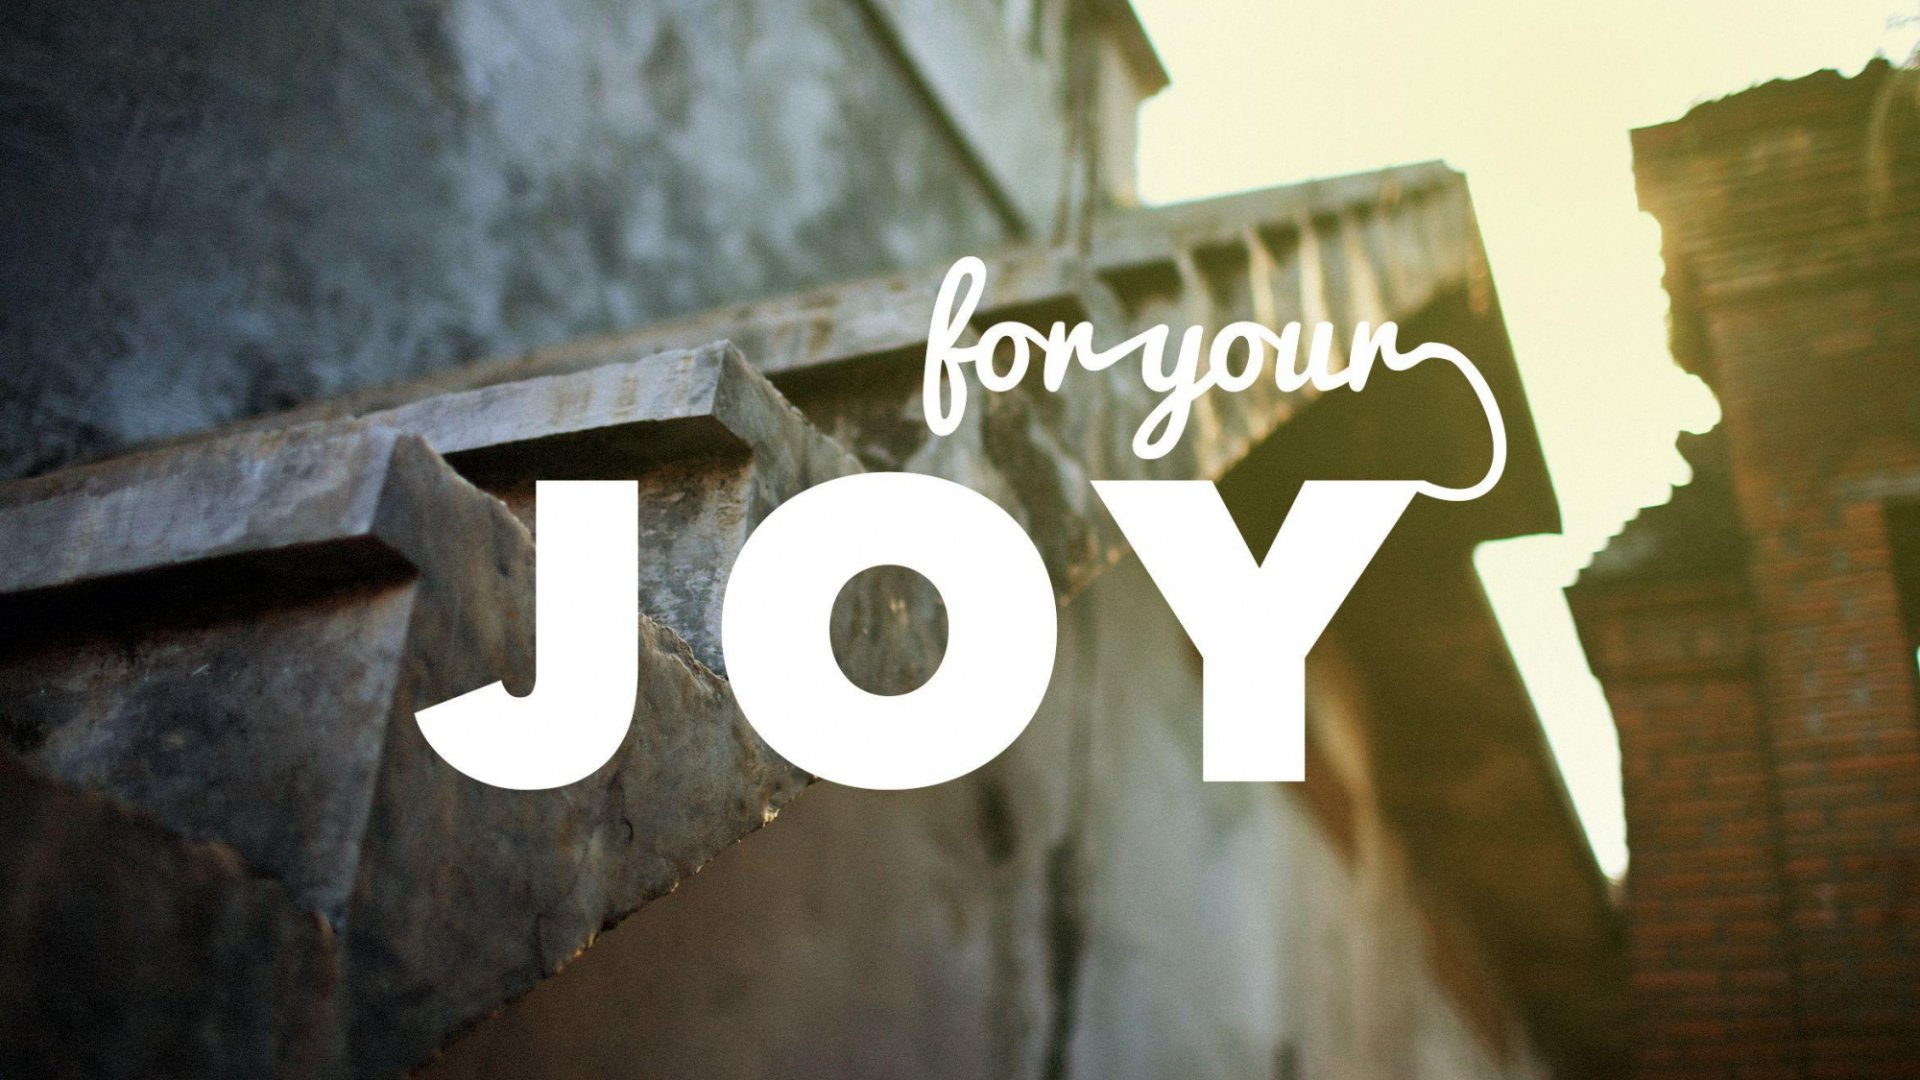 Teaching artwork for For Your Joy